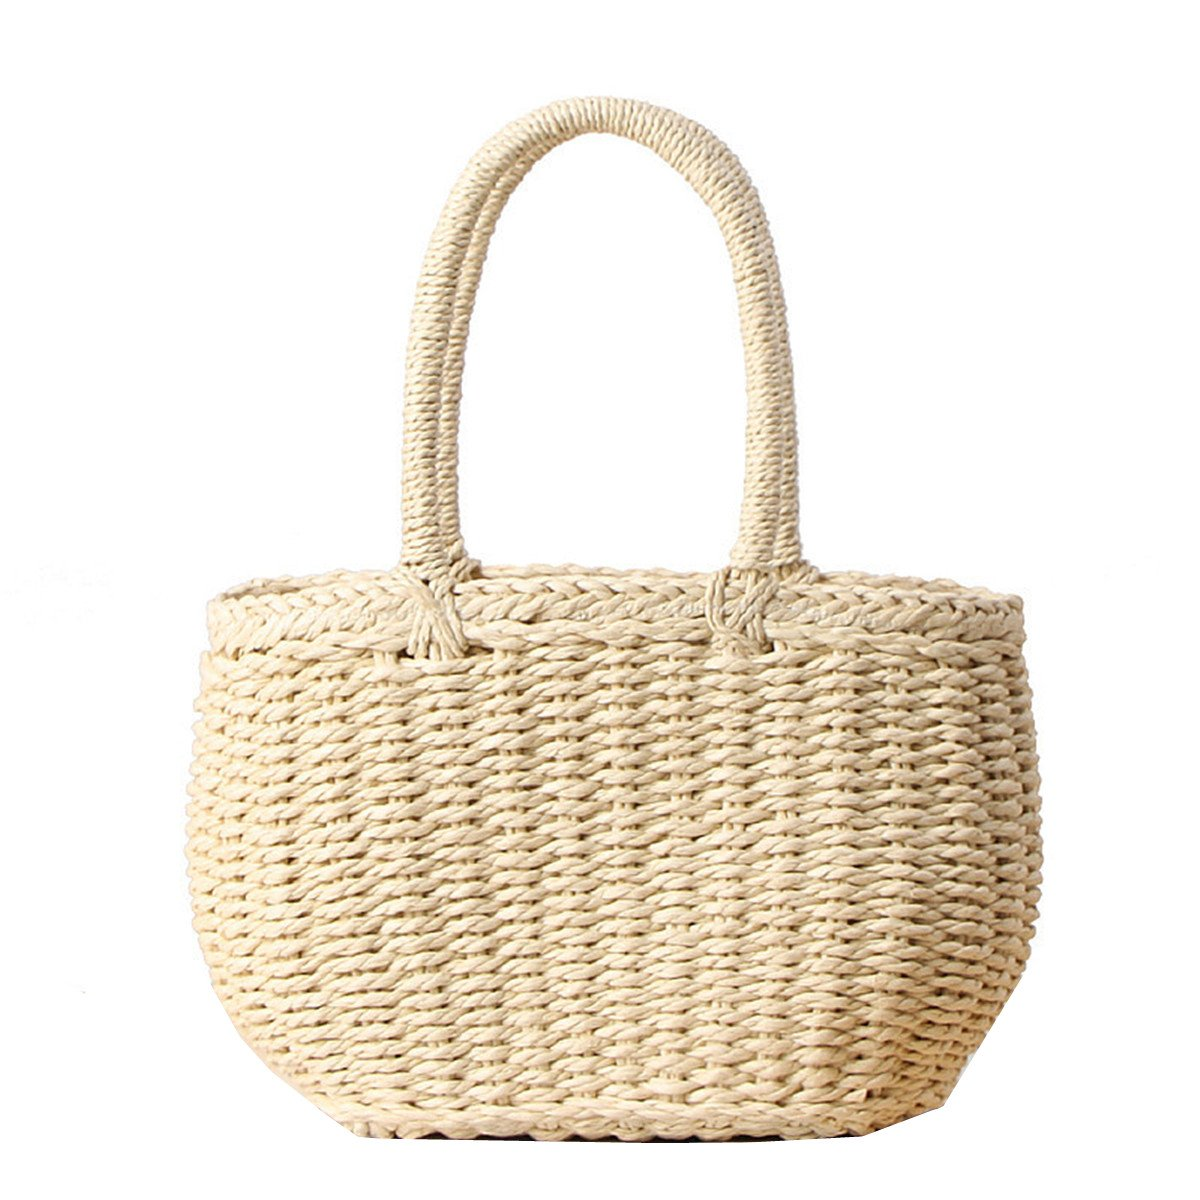 Andear Womens Casual Straw Woven Basket Handbag Summer Beach Vacation Tote Purse Bag Top Handle Bag 1-Beige